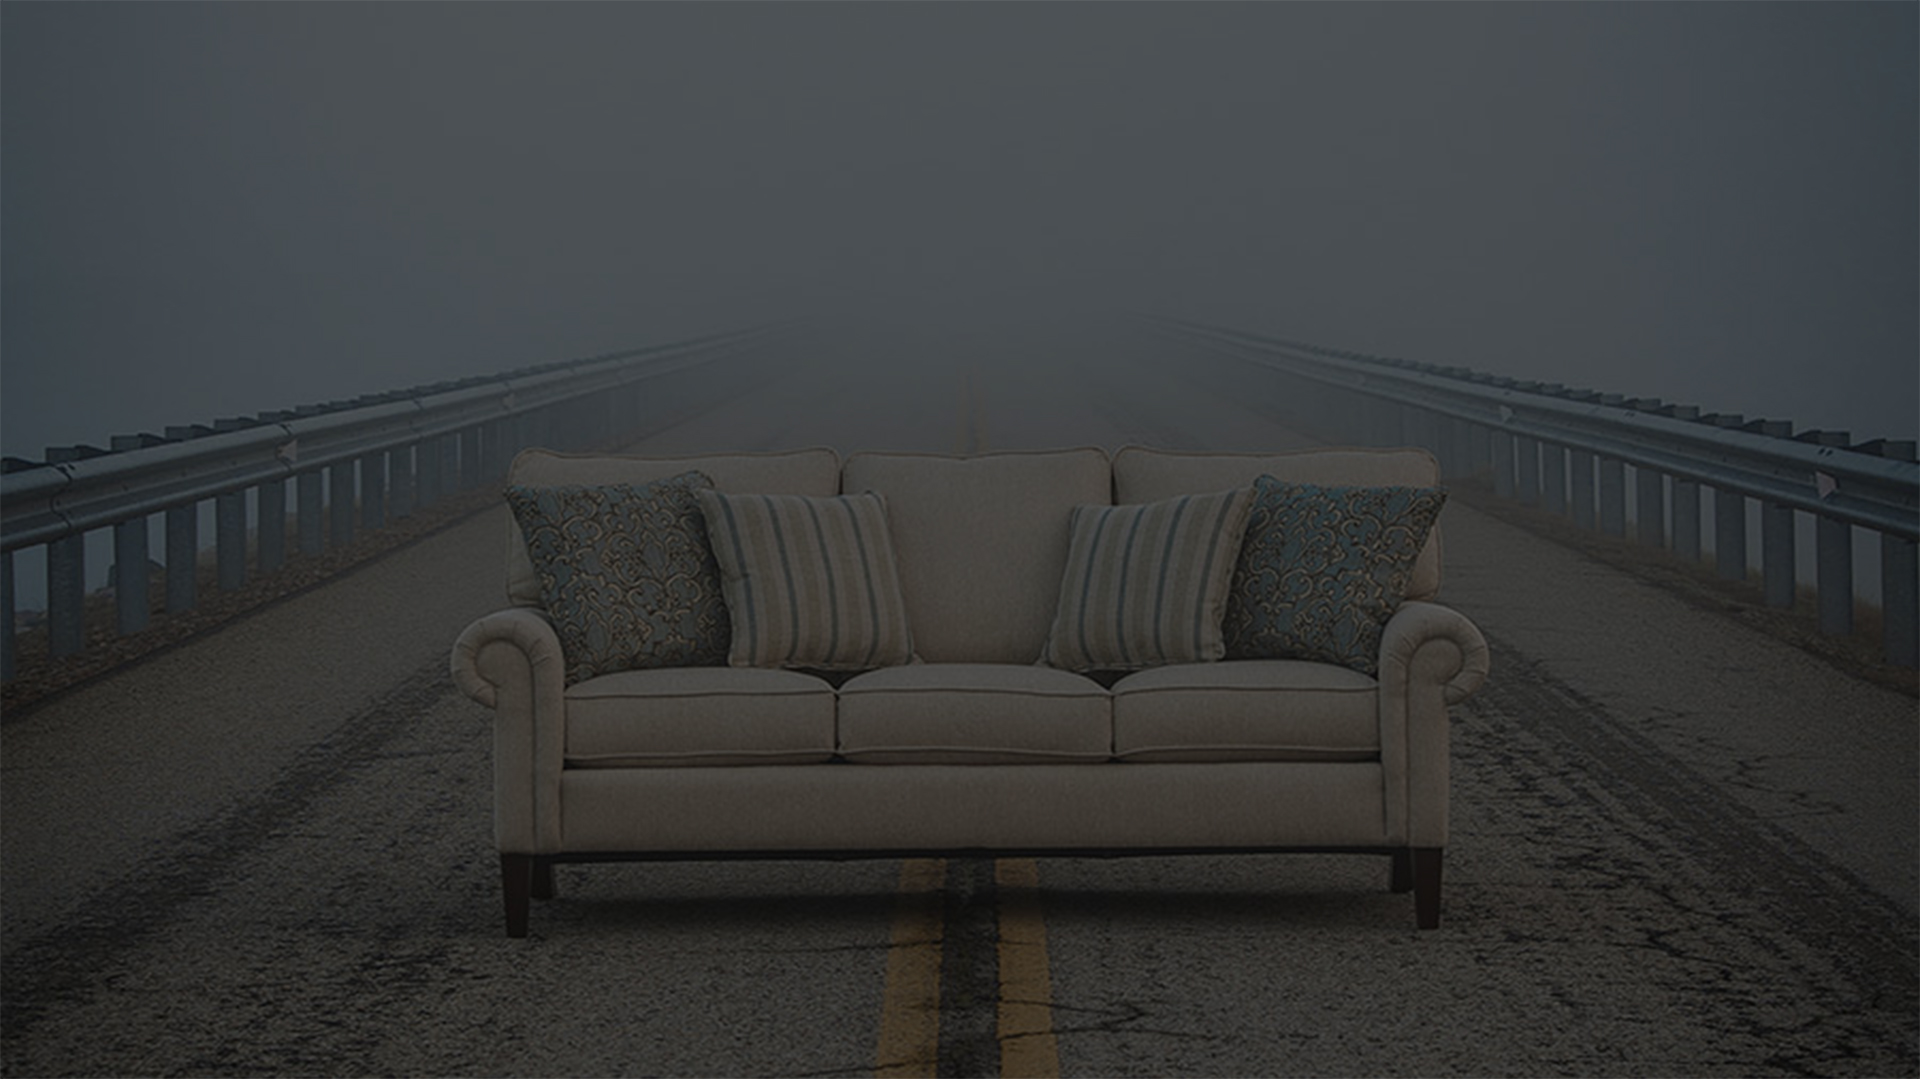 couch-background-Untitled-3